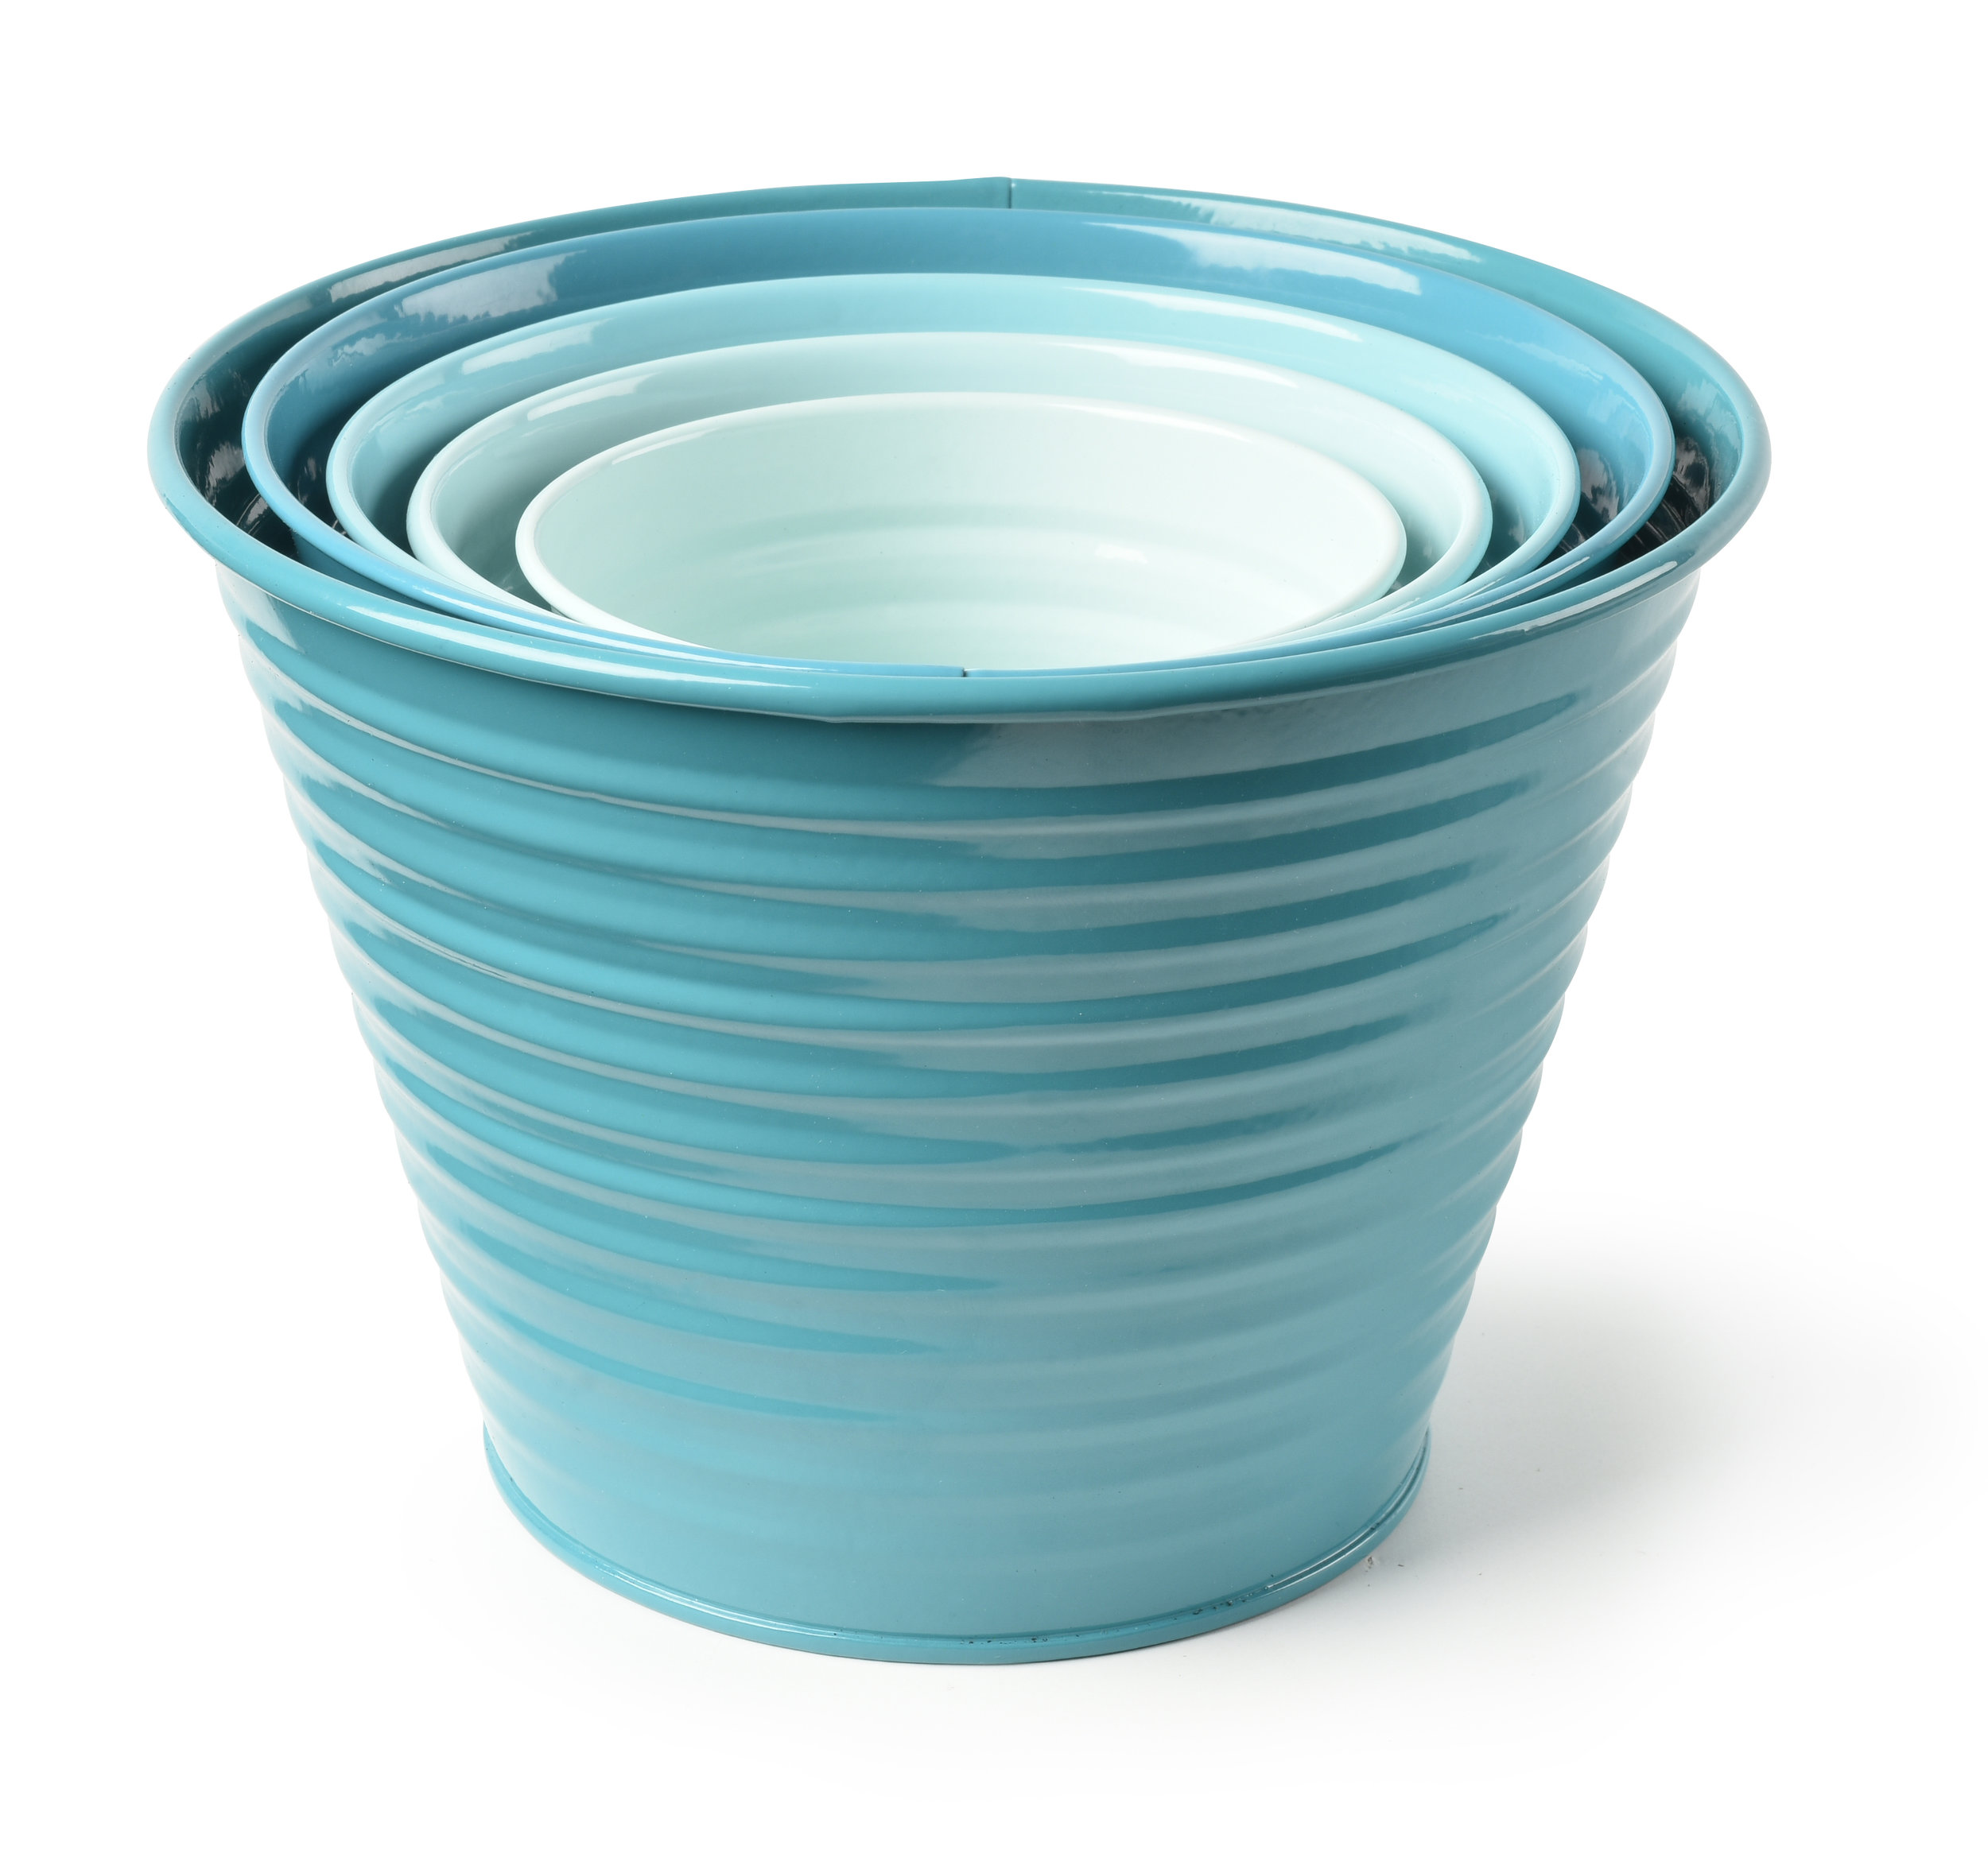 Set of Ombre Pots £19.95 for 5